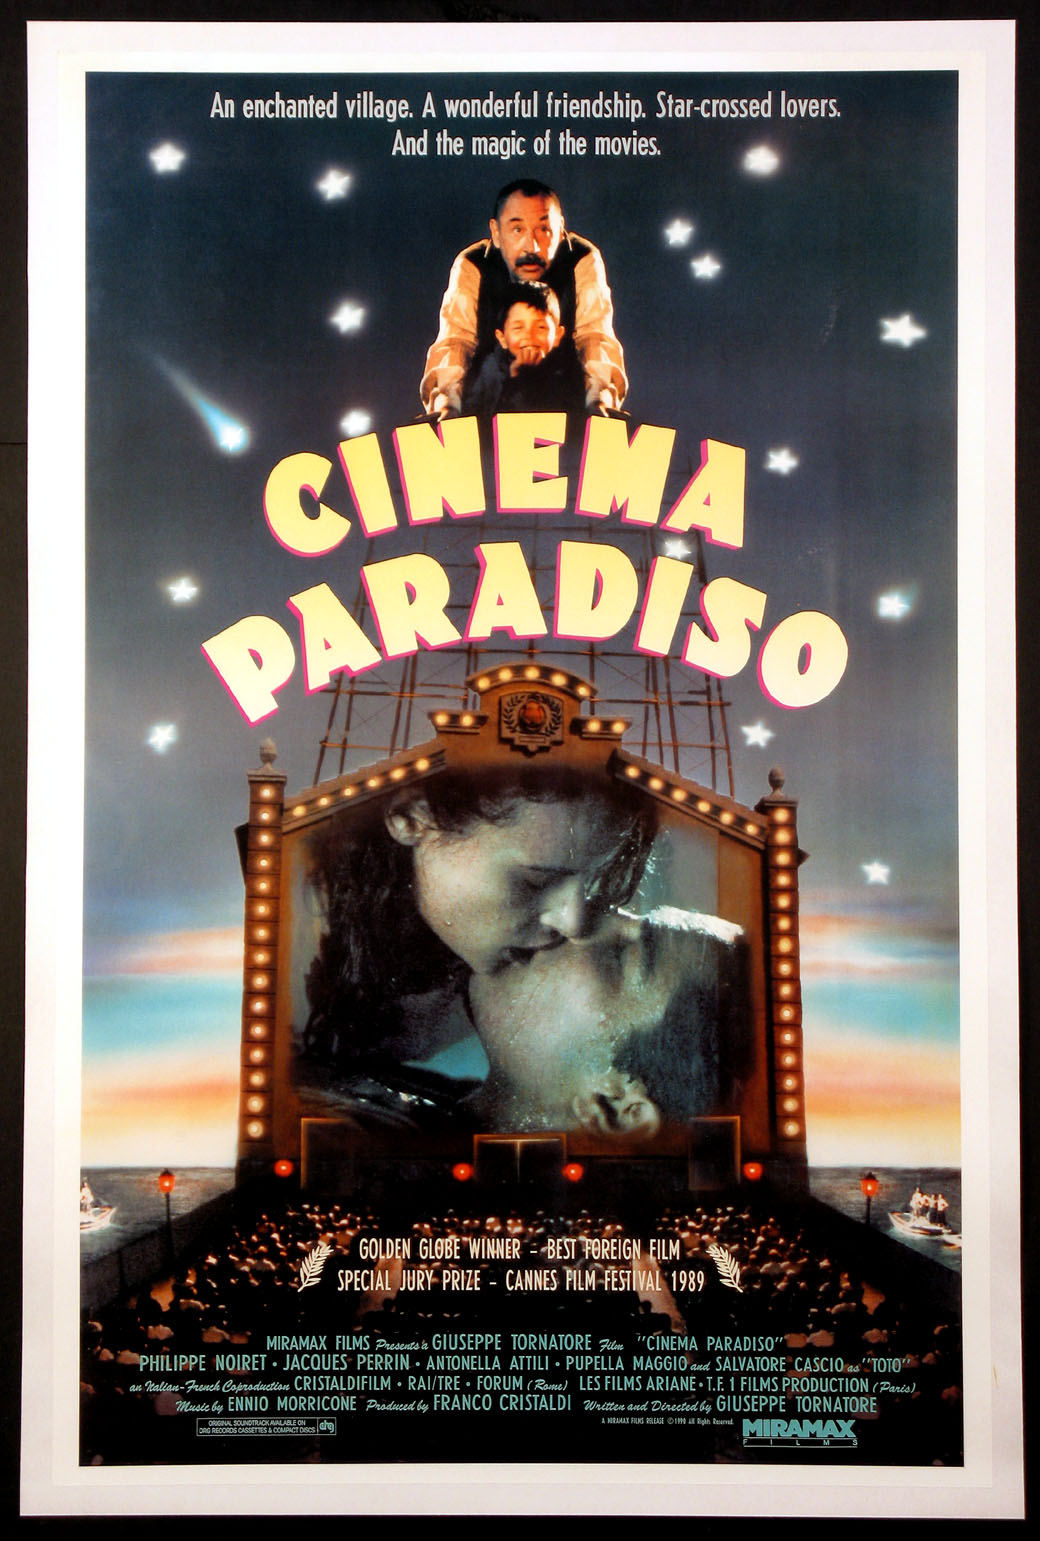 http://www.radio-couleur-chartreuse.org/wp-content/uploads/2020/06/cinema-paradisio.jpg